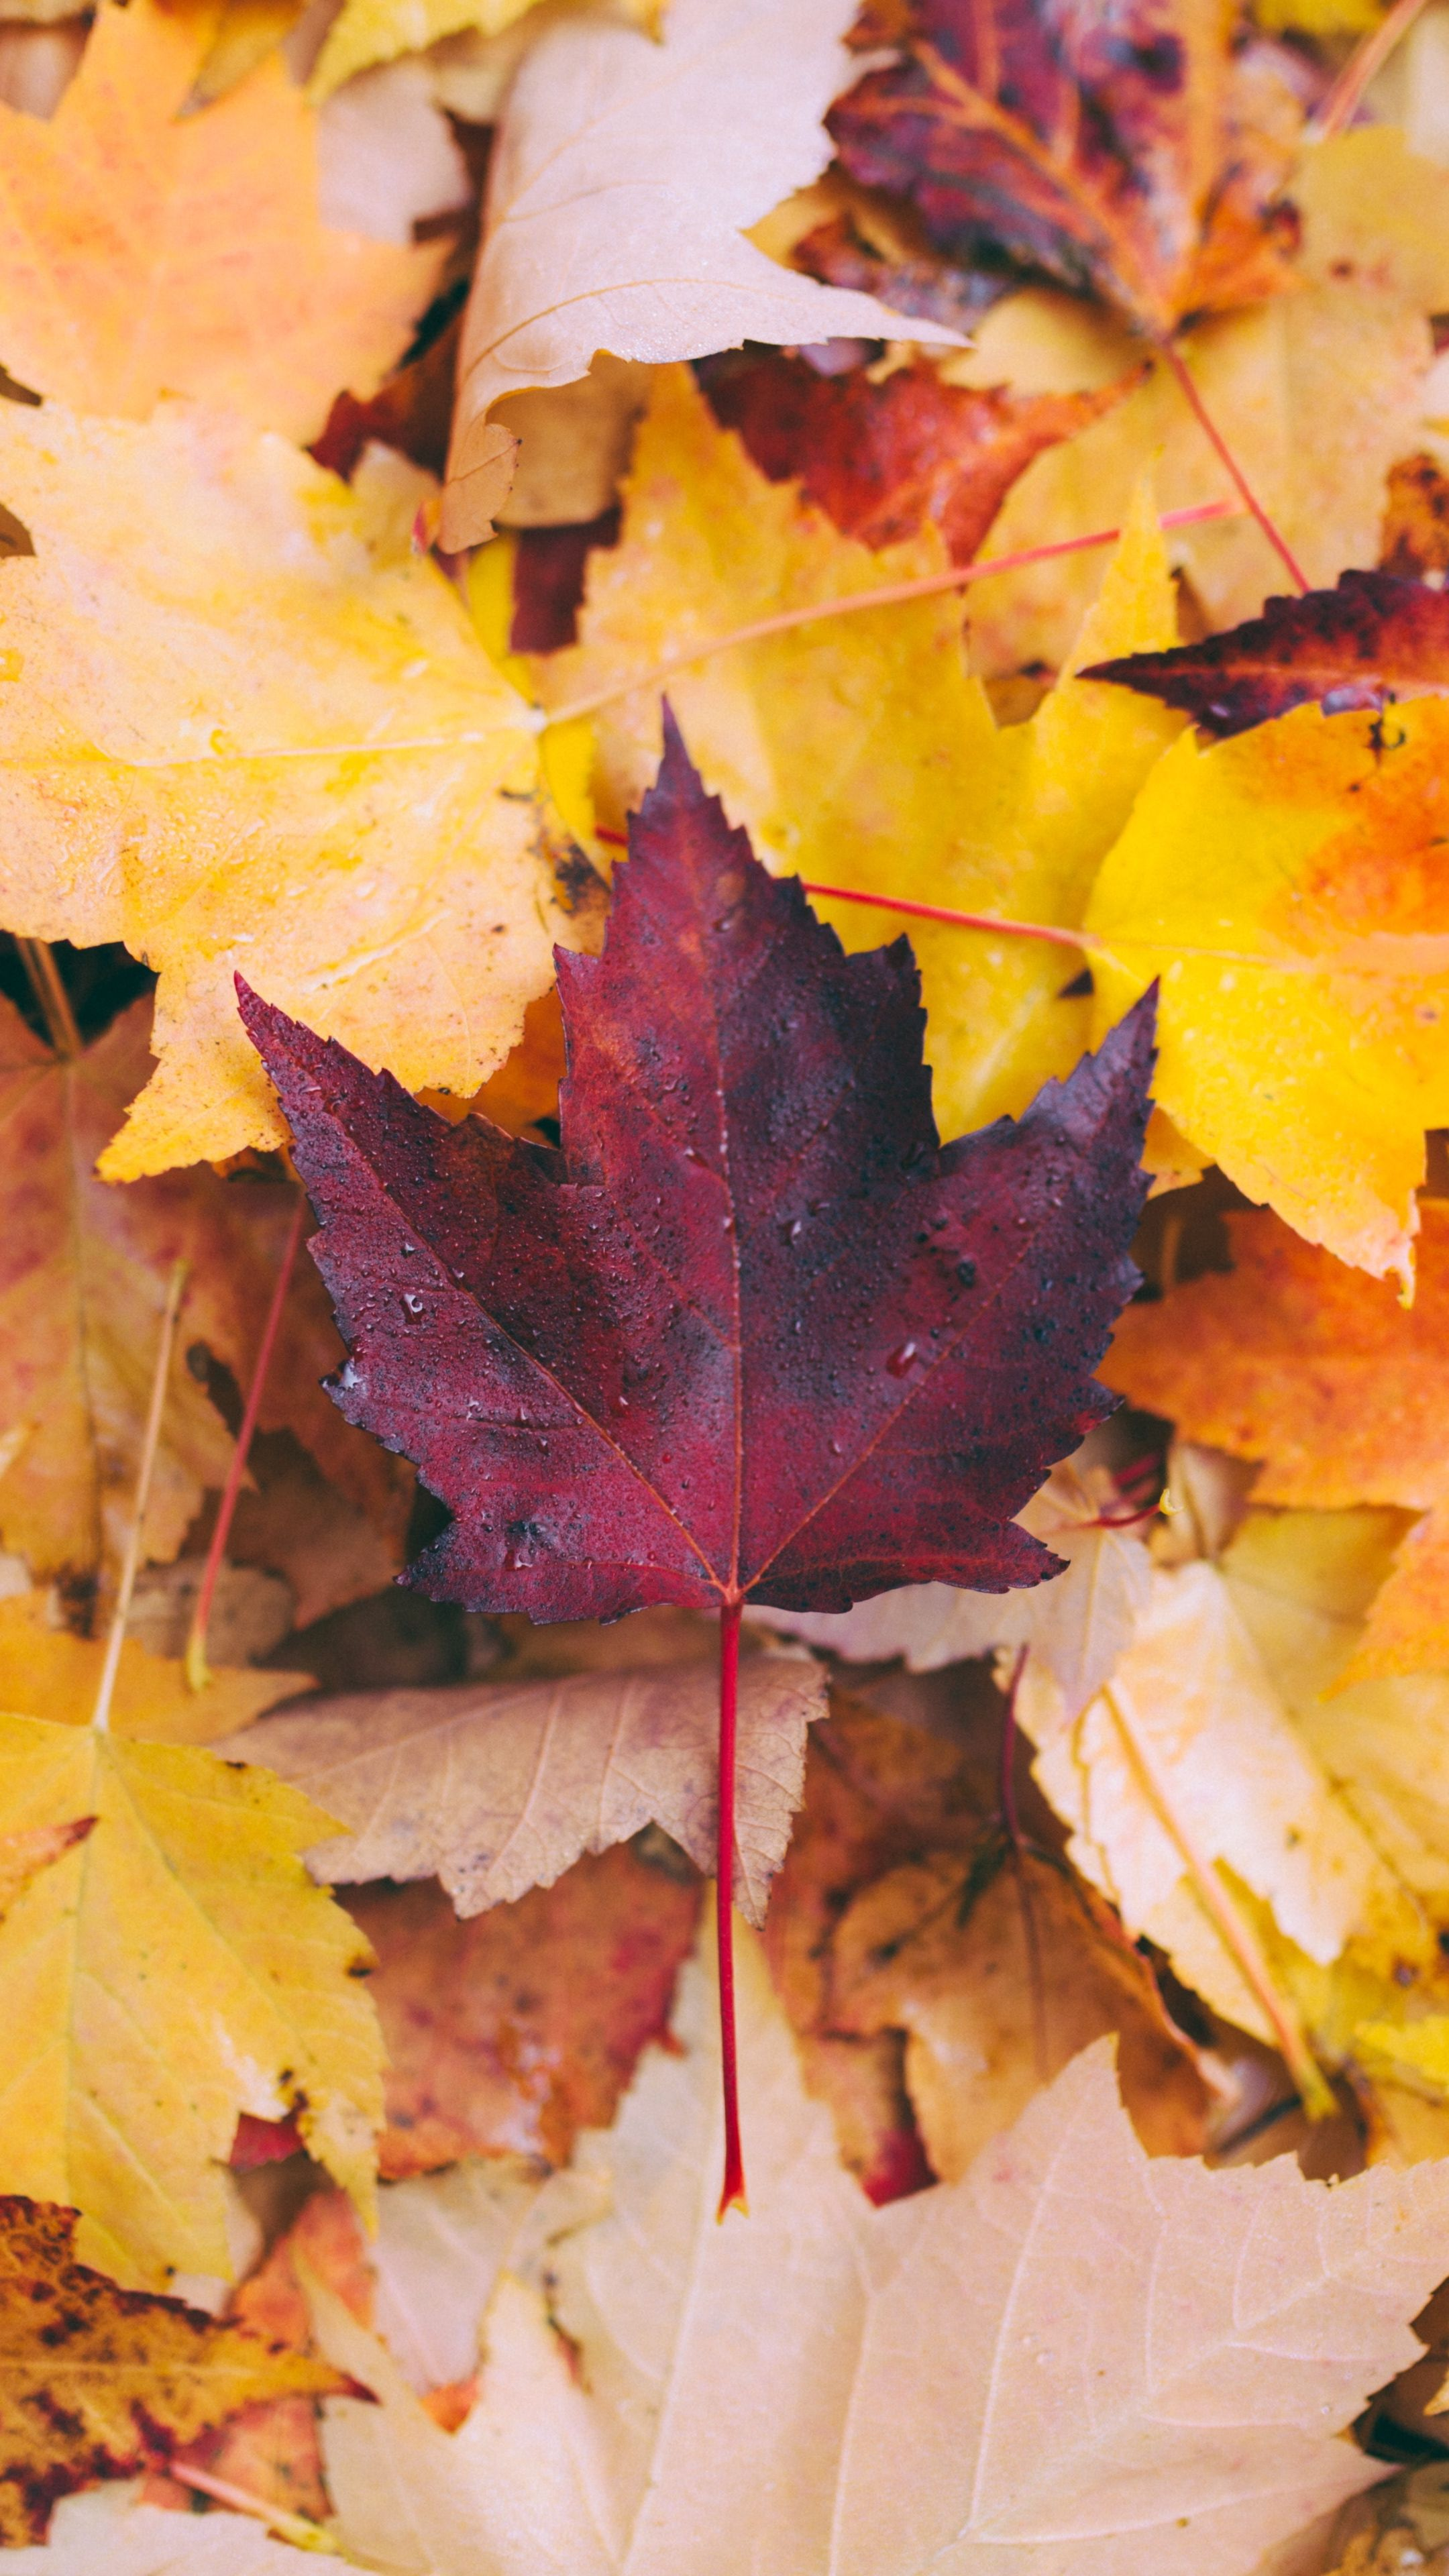 Nature Autumn Maple Leaves Wallpapers Hd 4k Background For Android Android Wallpaper Leaf Wallpaper Wallpaper